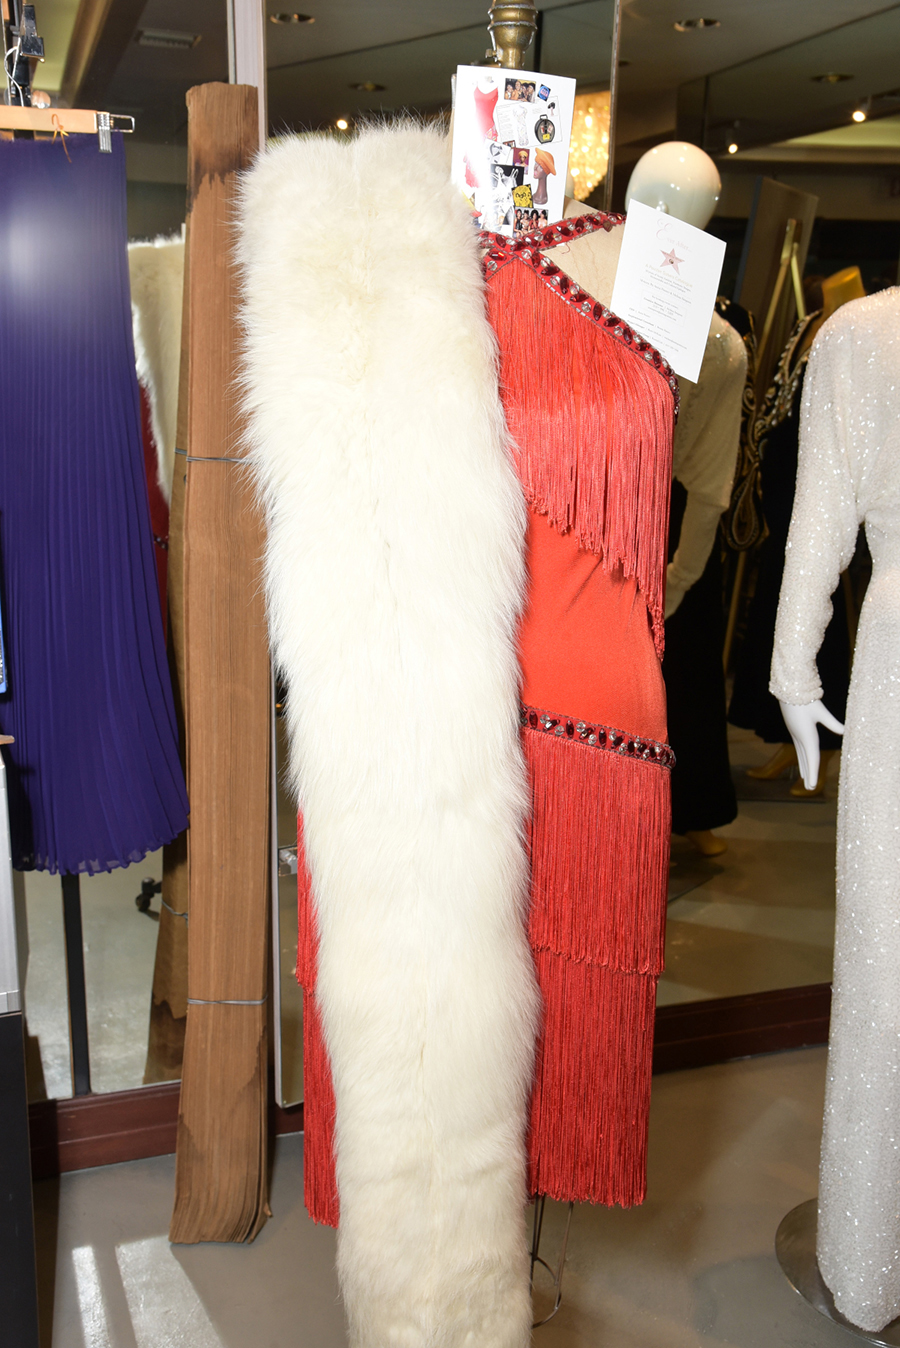 A Bob Mackie design for the Pointer Sisters.